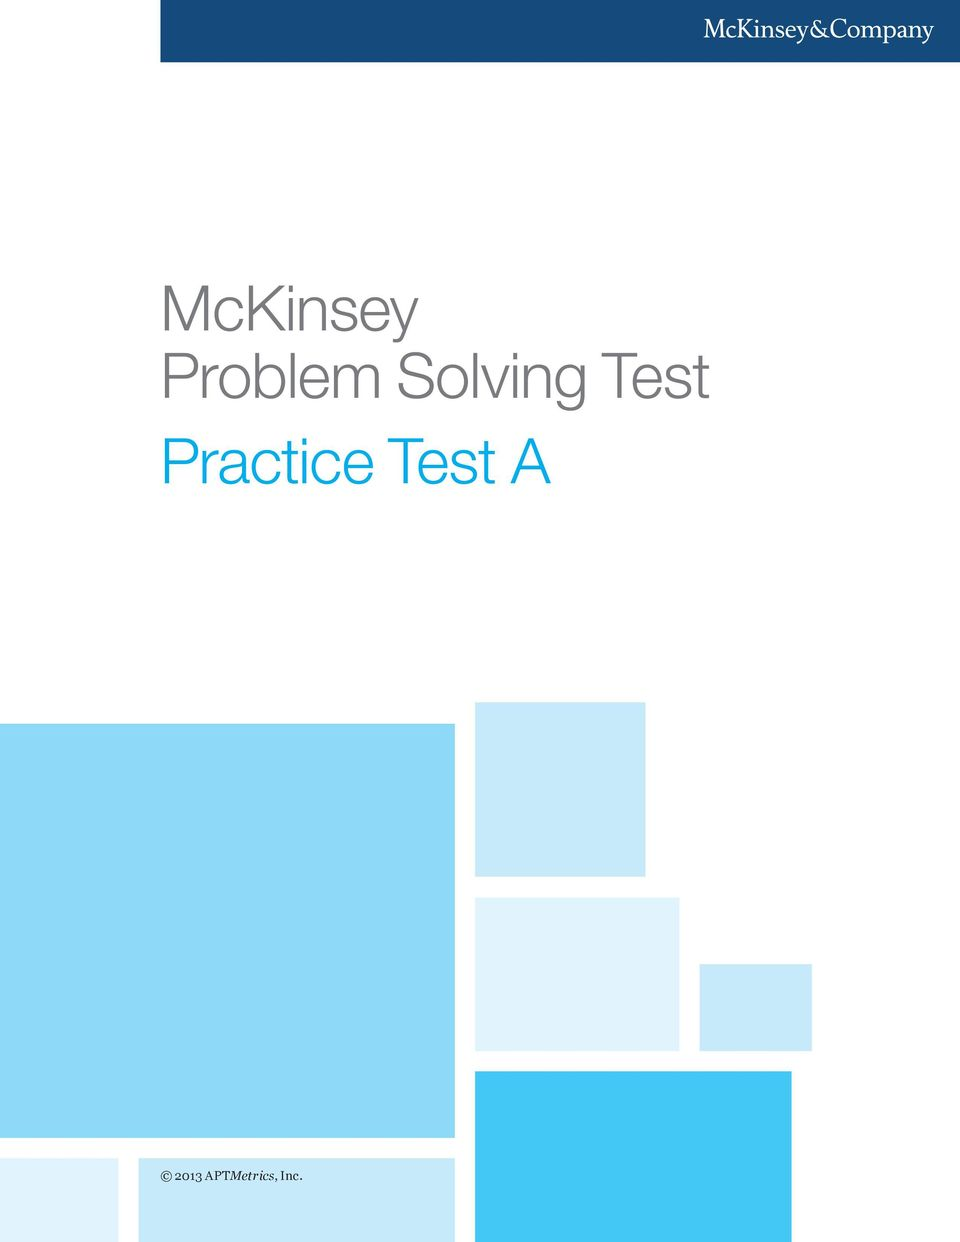 Practice Test A